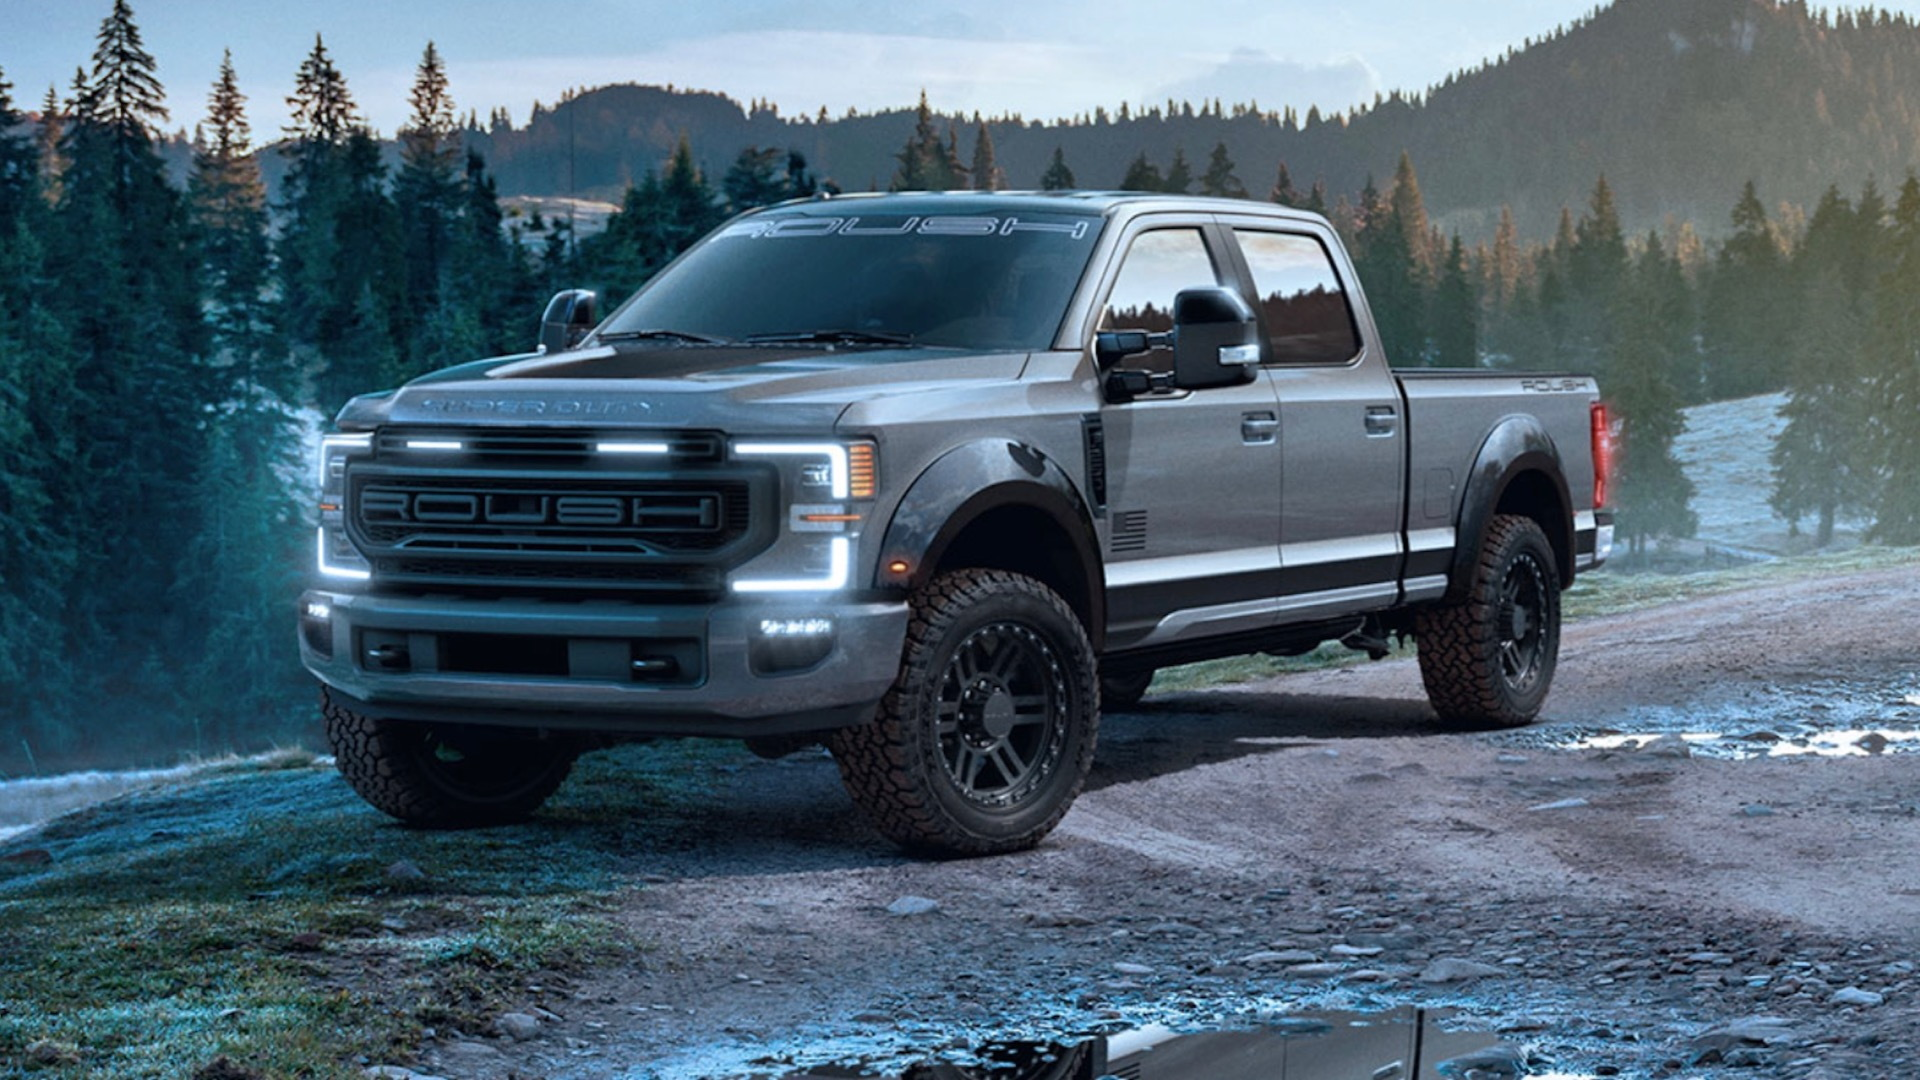 Roush 2021 Ford F-Series Super Duty